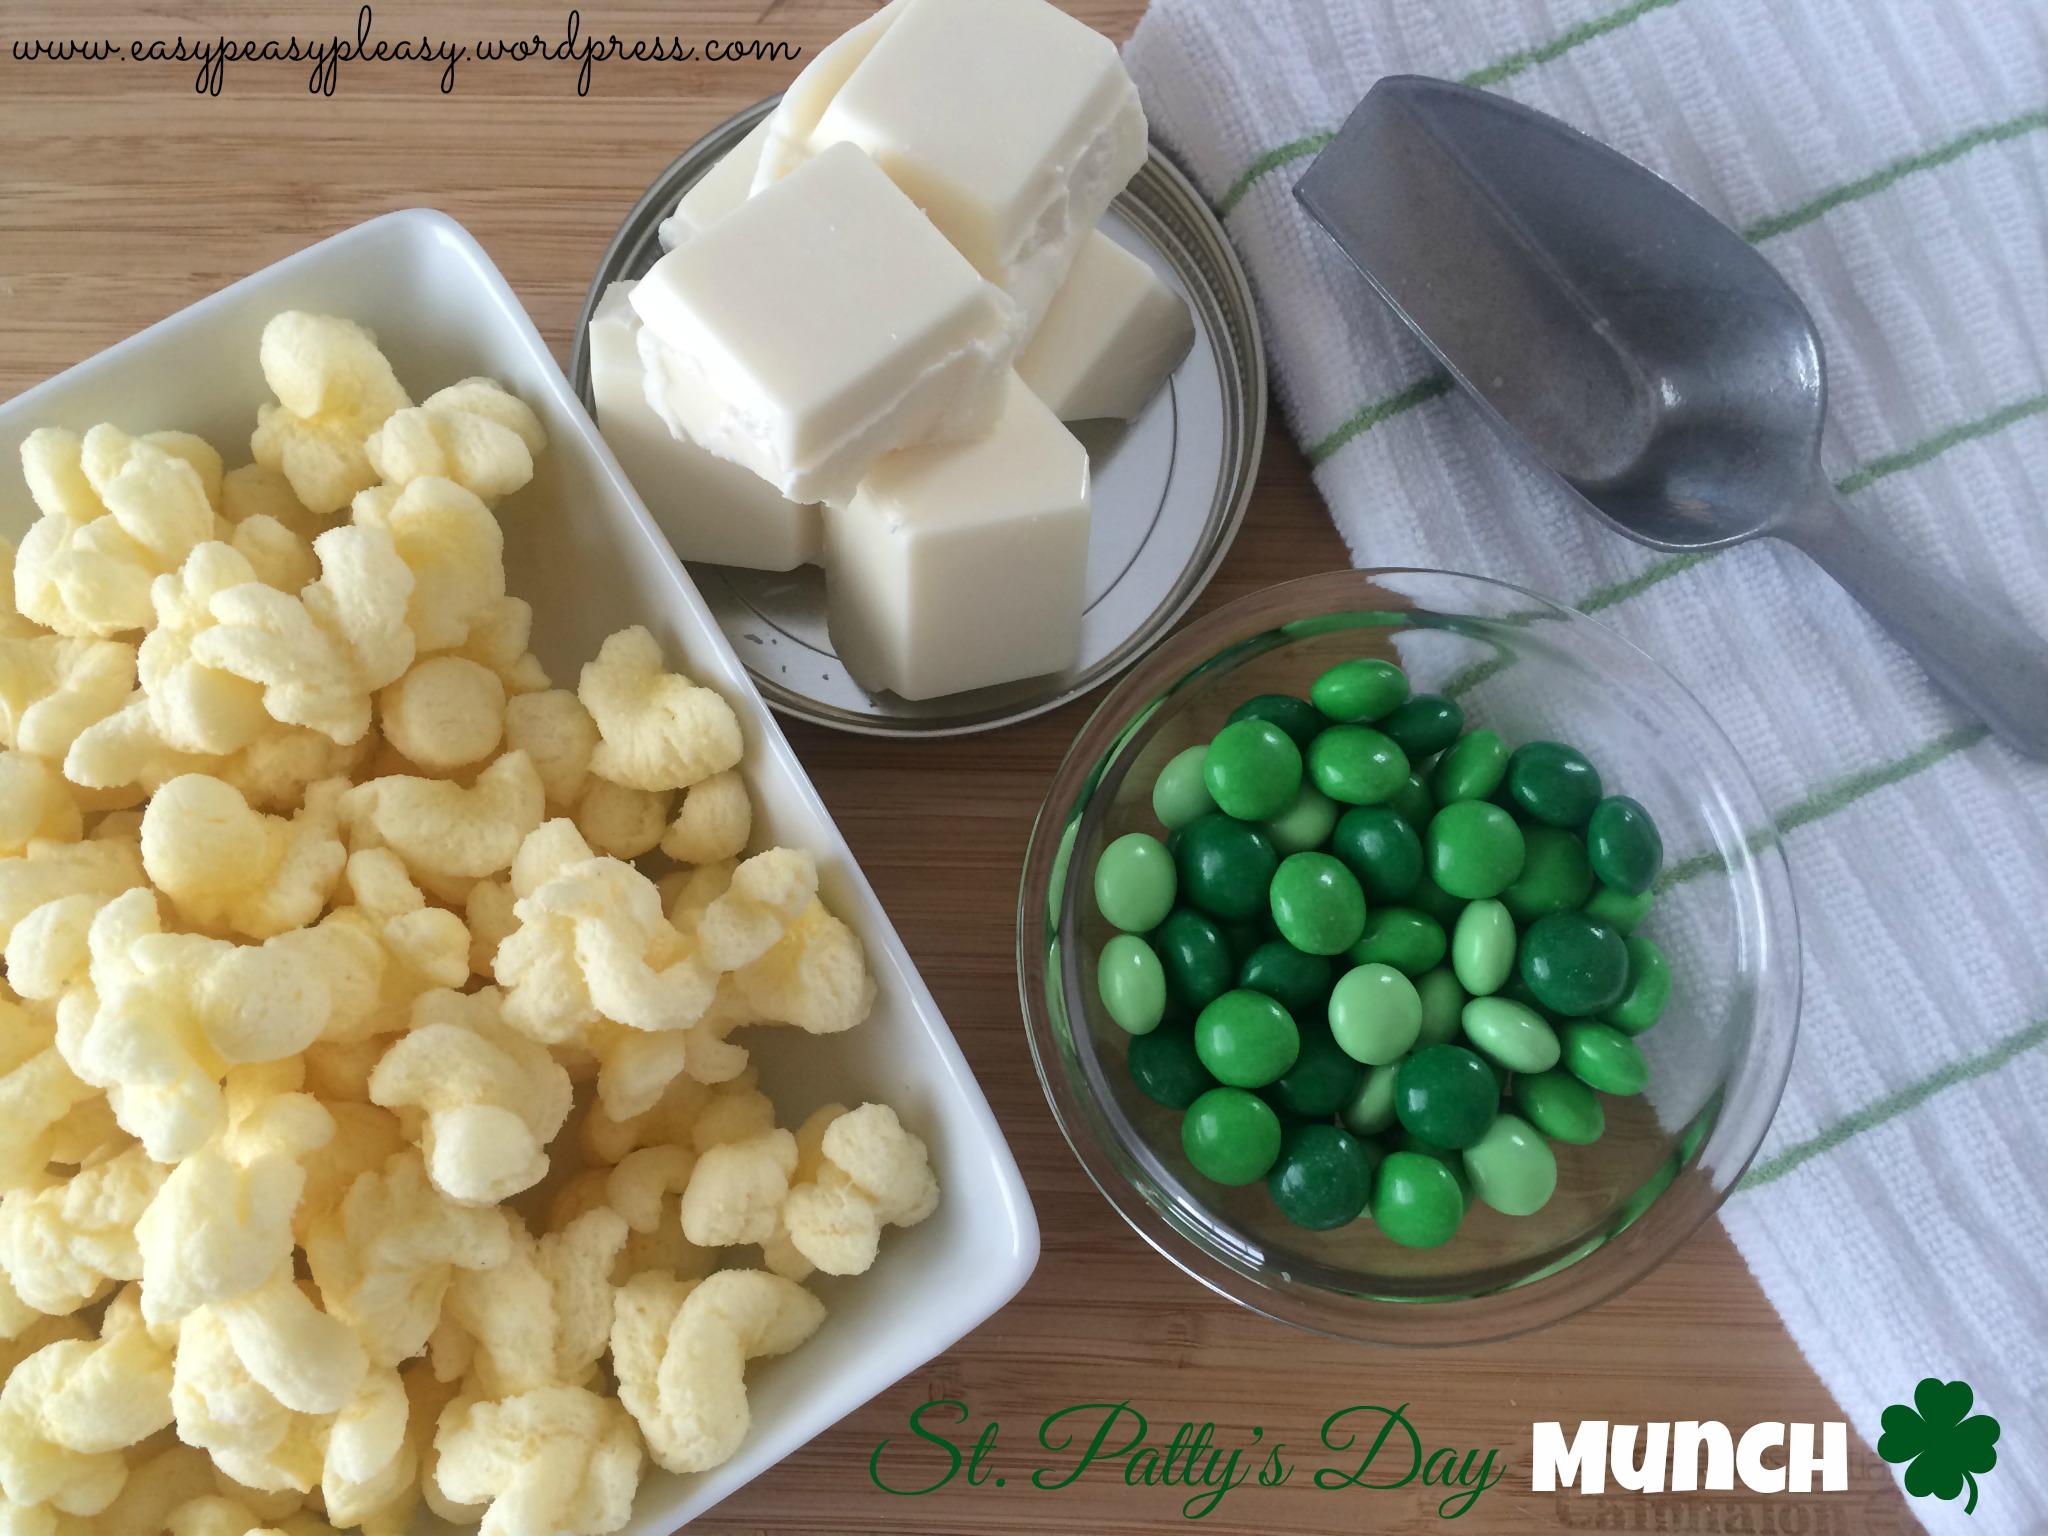 Easy St. Patrick's Day snack Idea at www.easypeasypleasy.wordpress.com